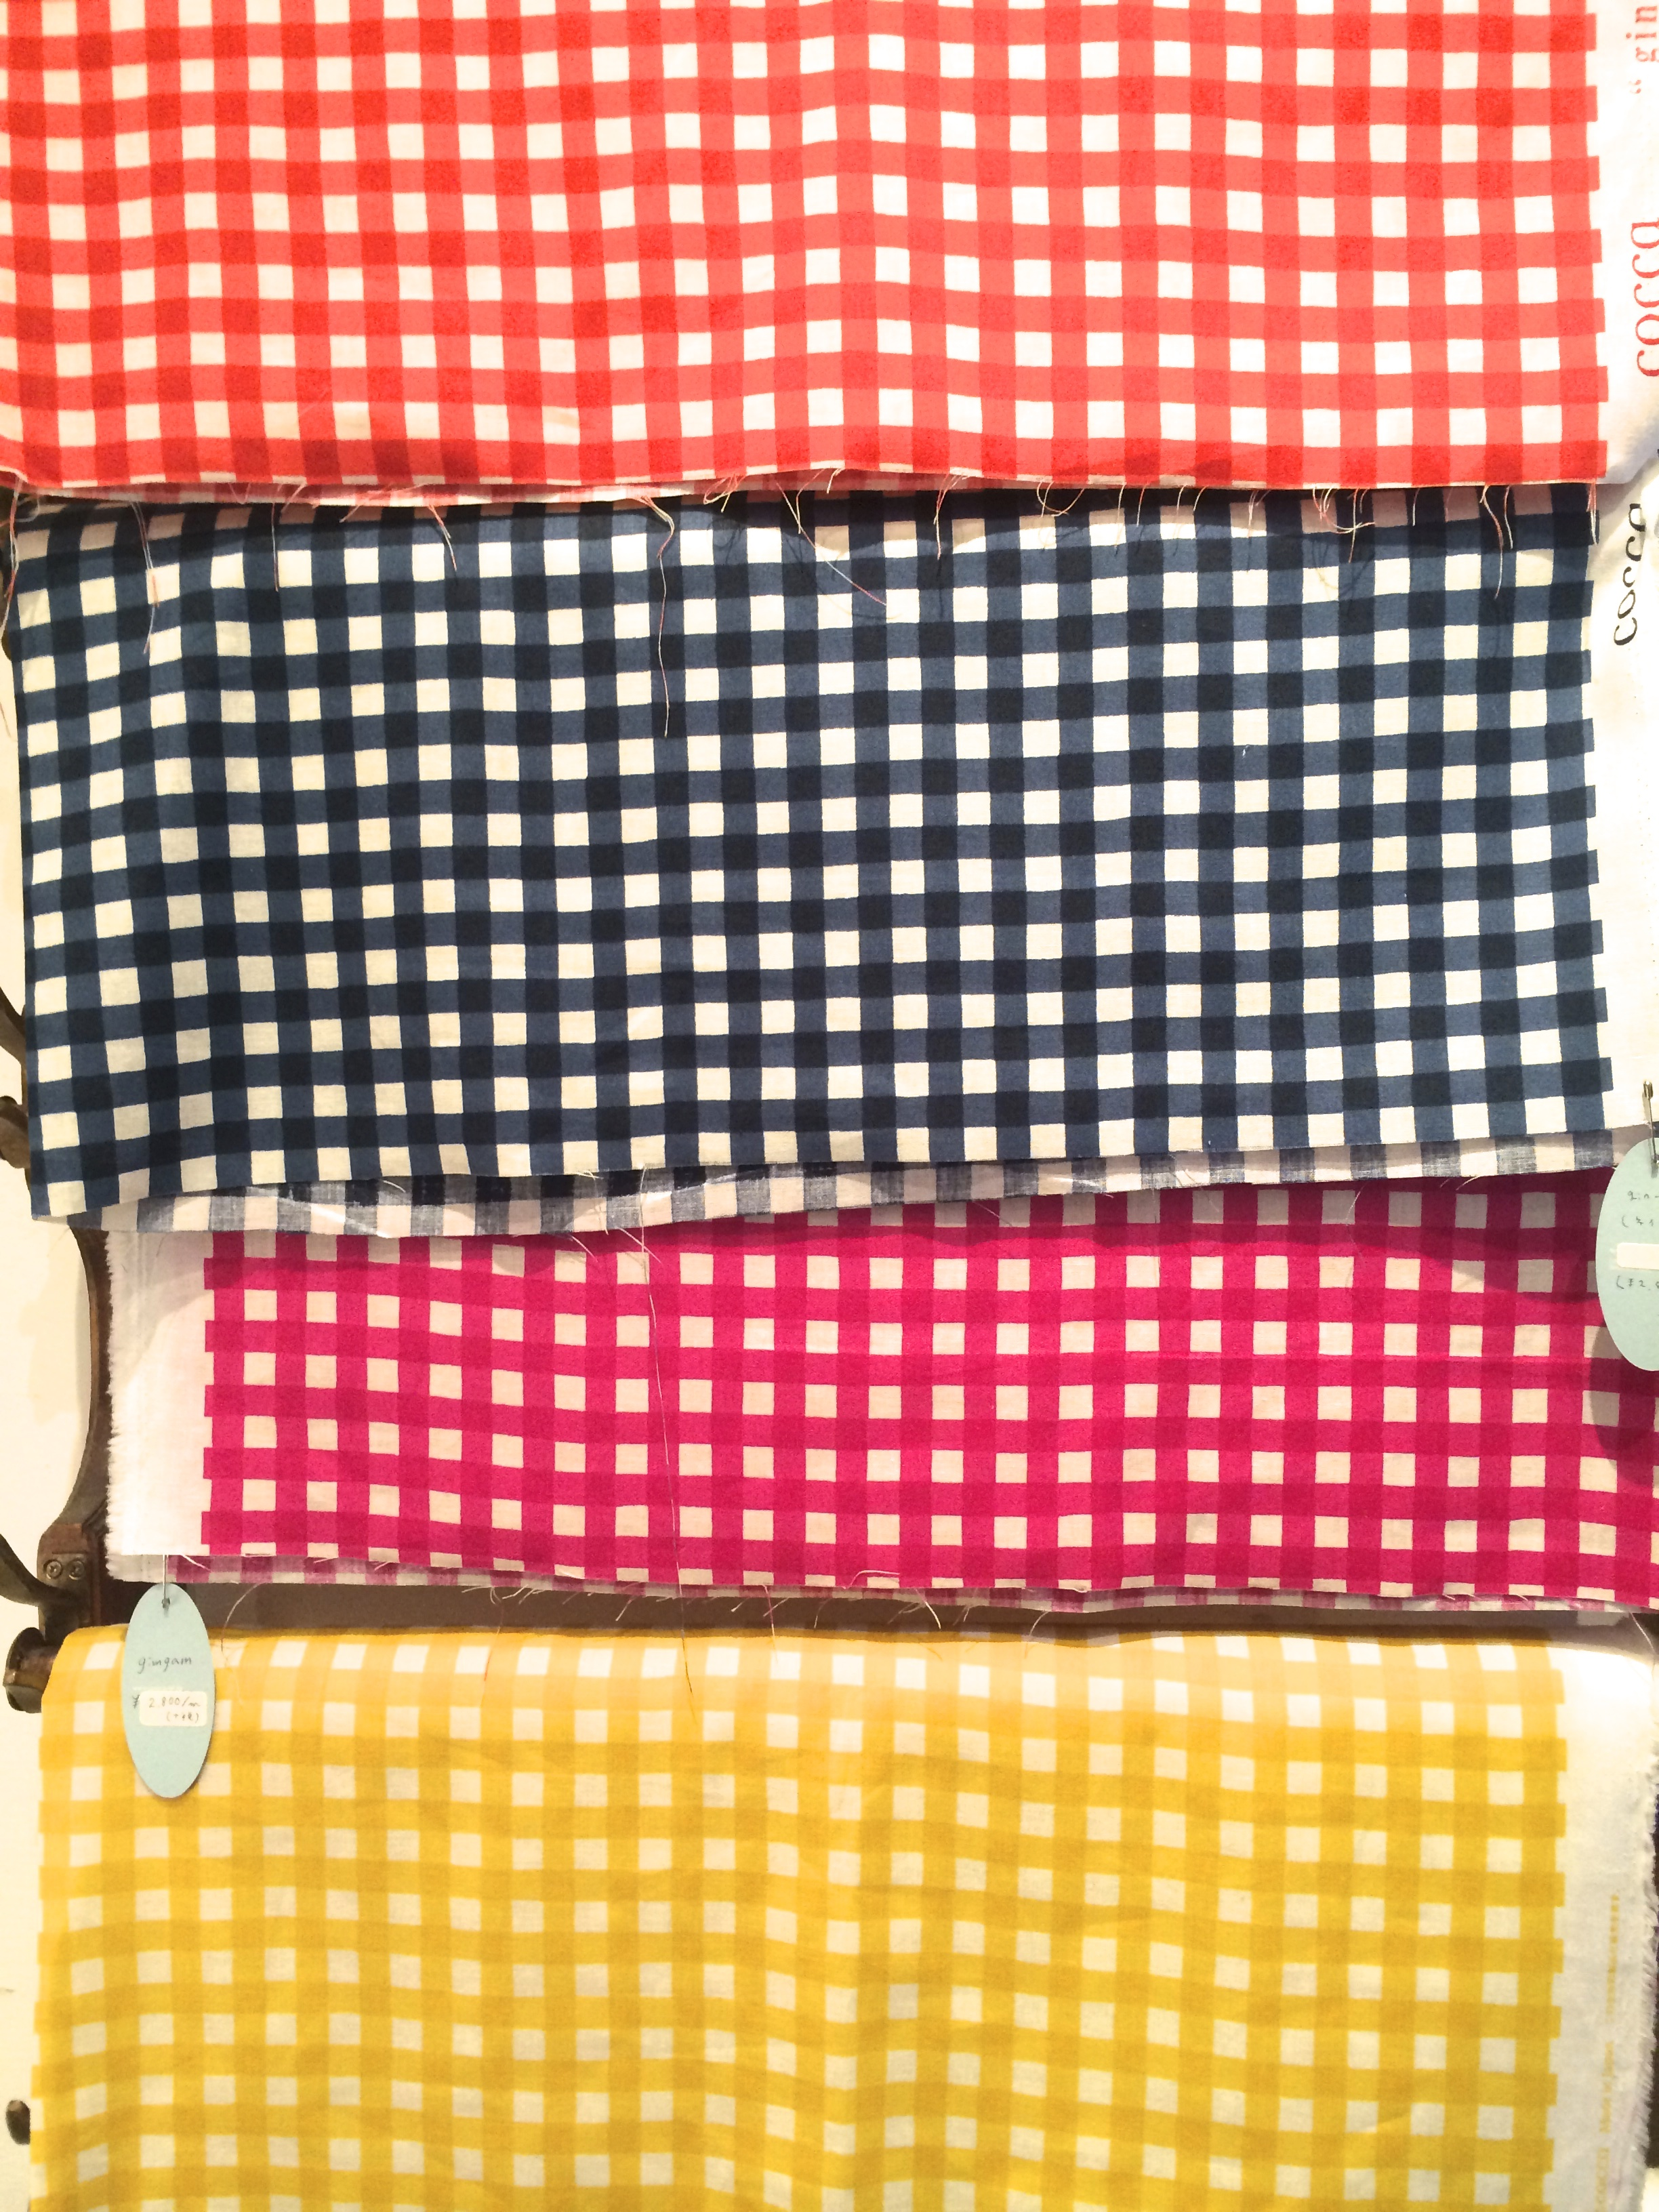 a close-up of cocca's gingham patterns.